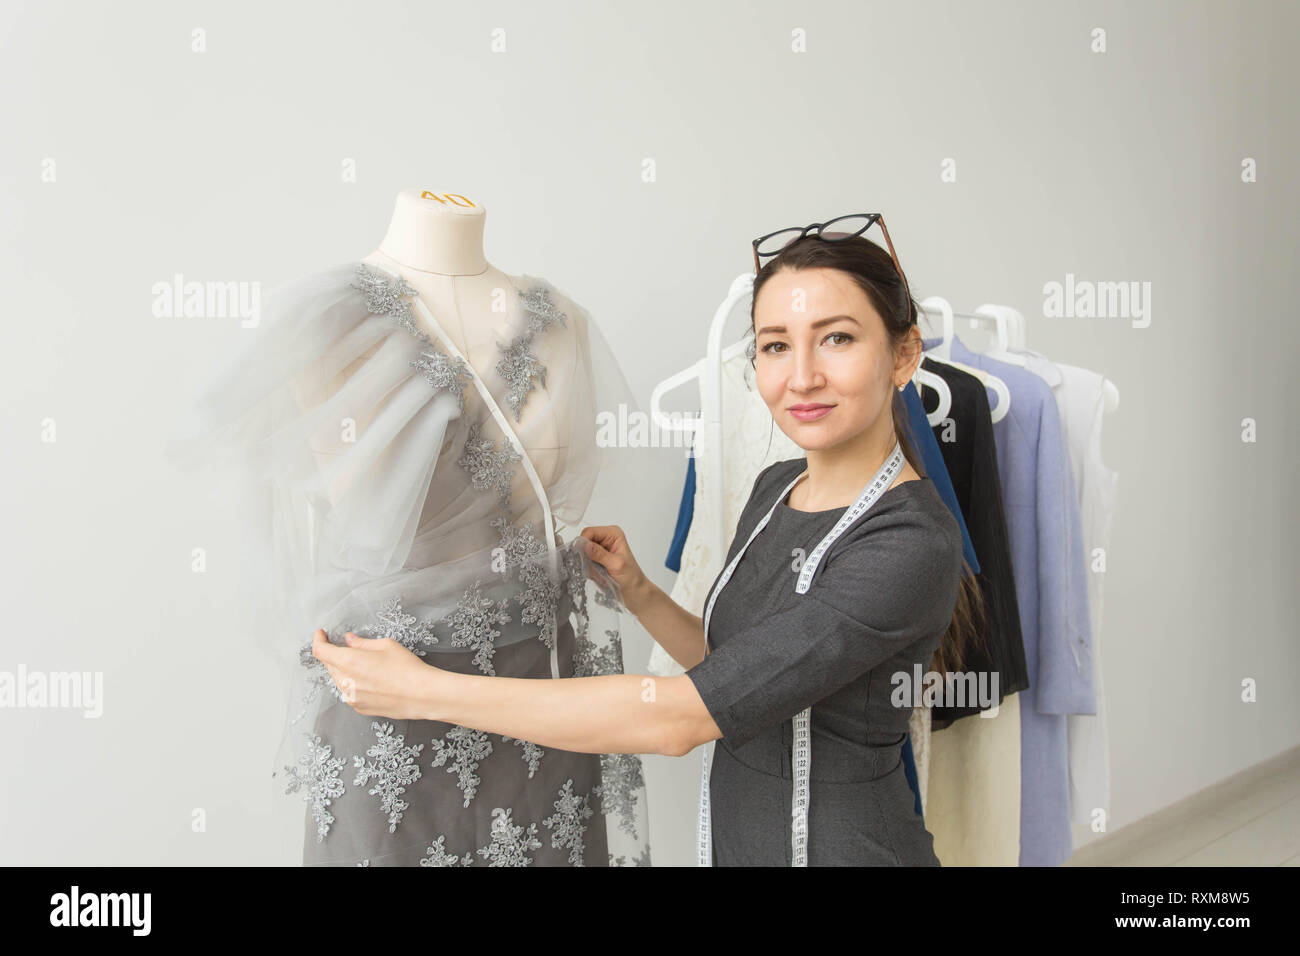 Dressmaker Fashion Designer Tailor And People Concept Beautiful Fashion Woman Designer Standing In Studio Stock Photo Alamy